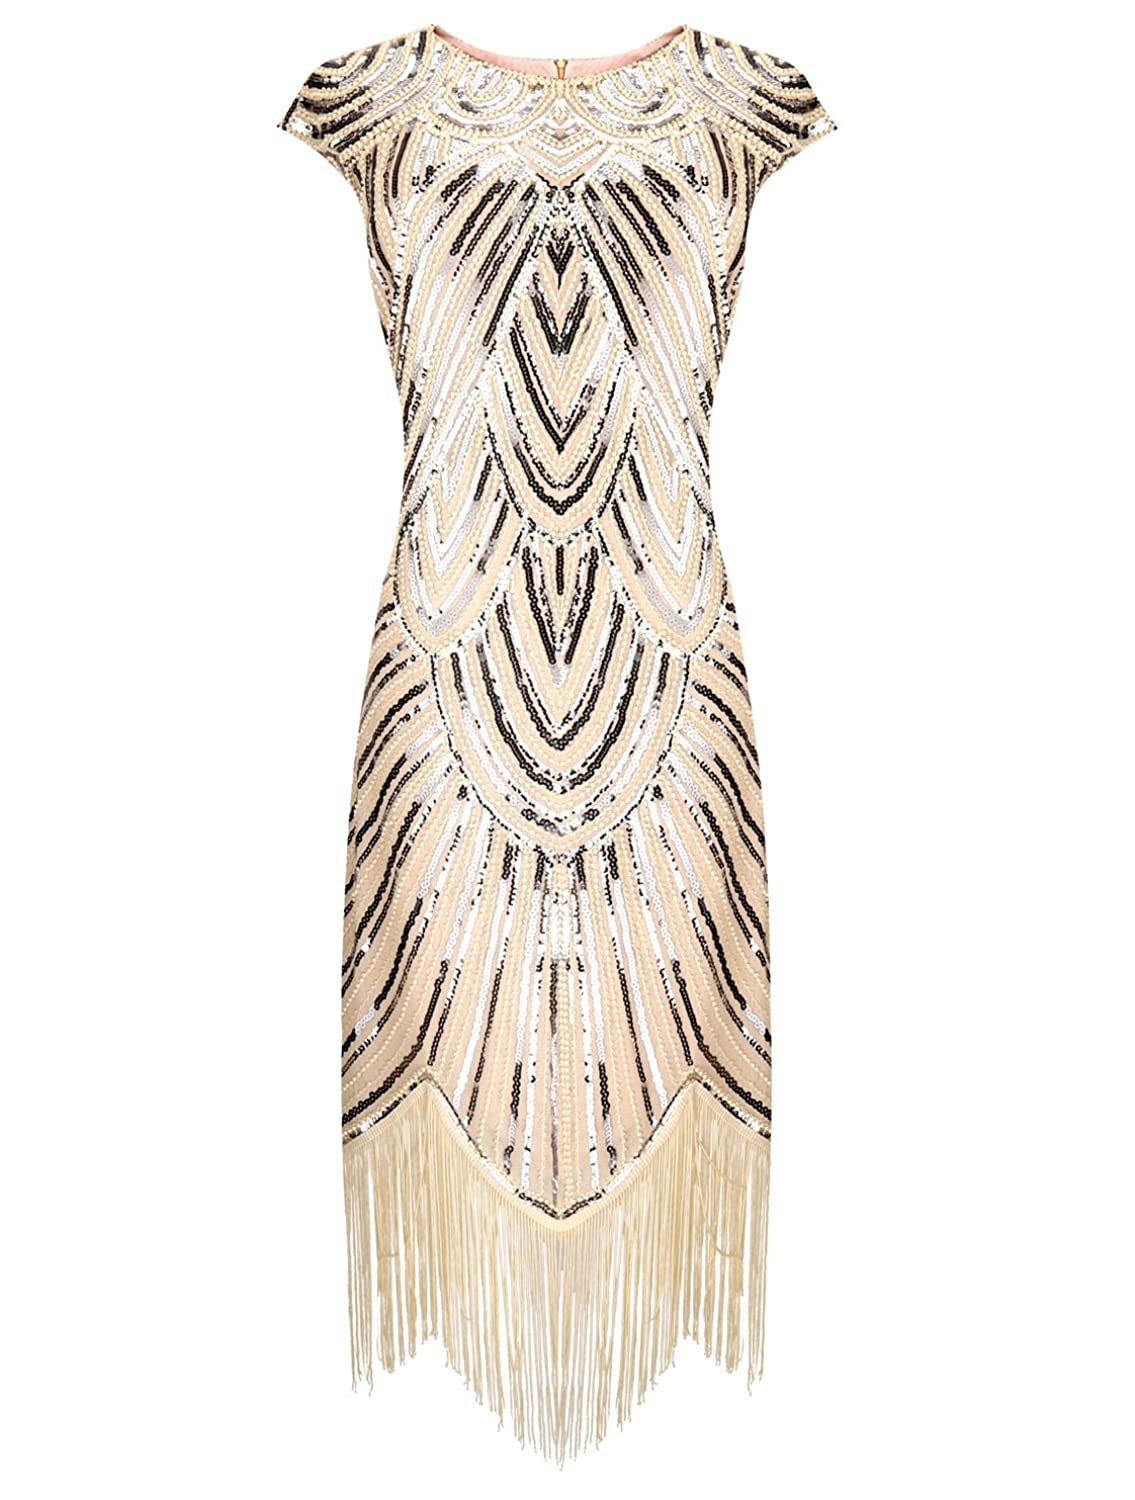 Roaring 20s Costumes- Flapper Costumes, Gangster Costumes Belinla 1920s Gatsby Retro Diamond Sequined Embellished Fringed Flapper Dress $36.99 AT vintagedancer.com